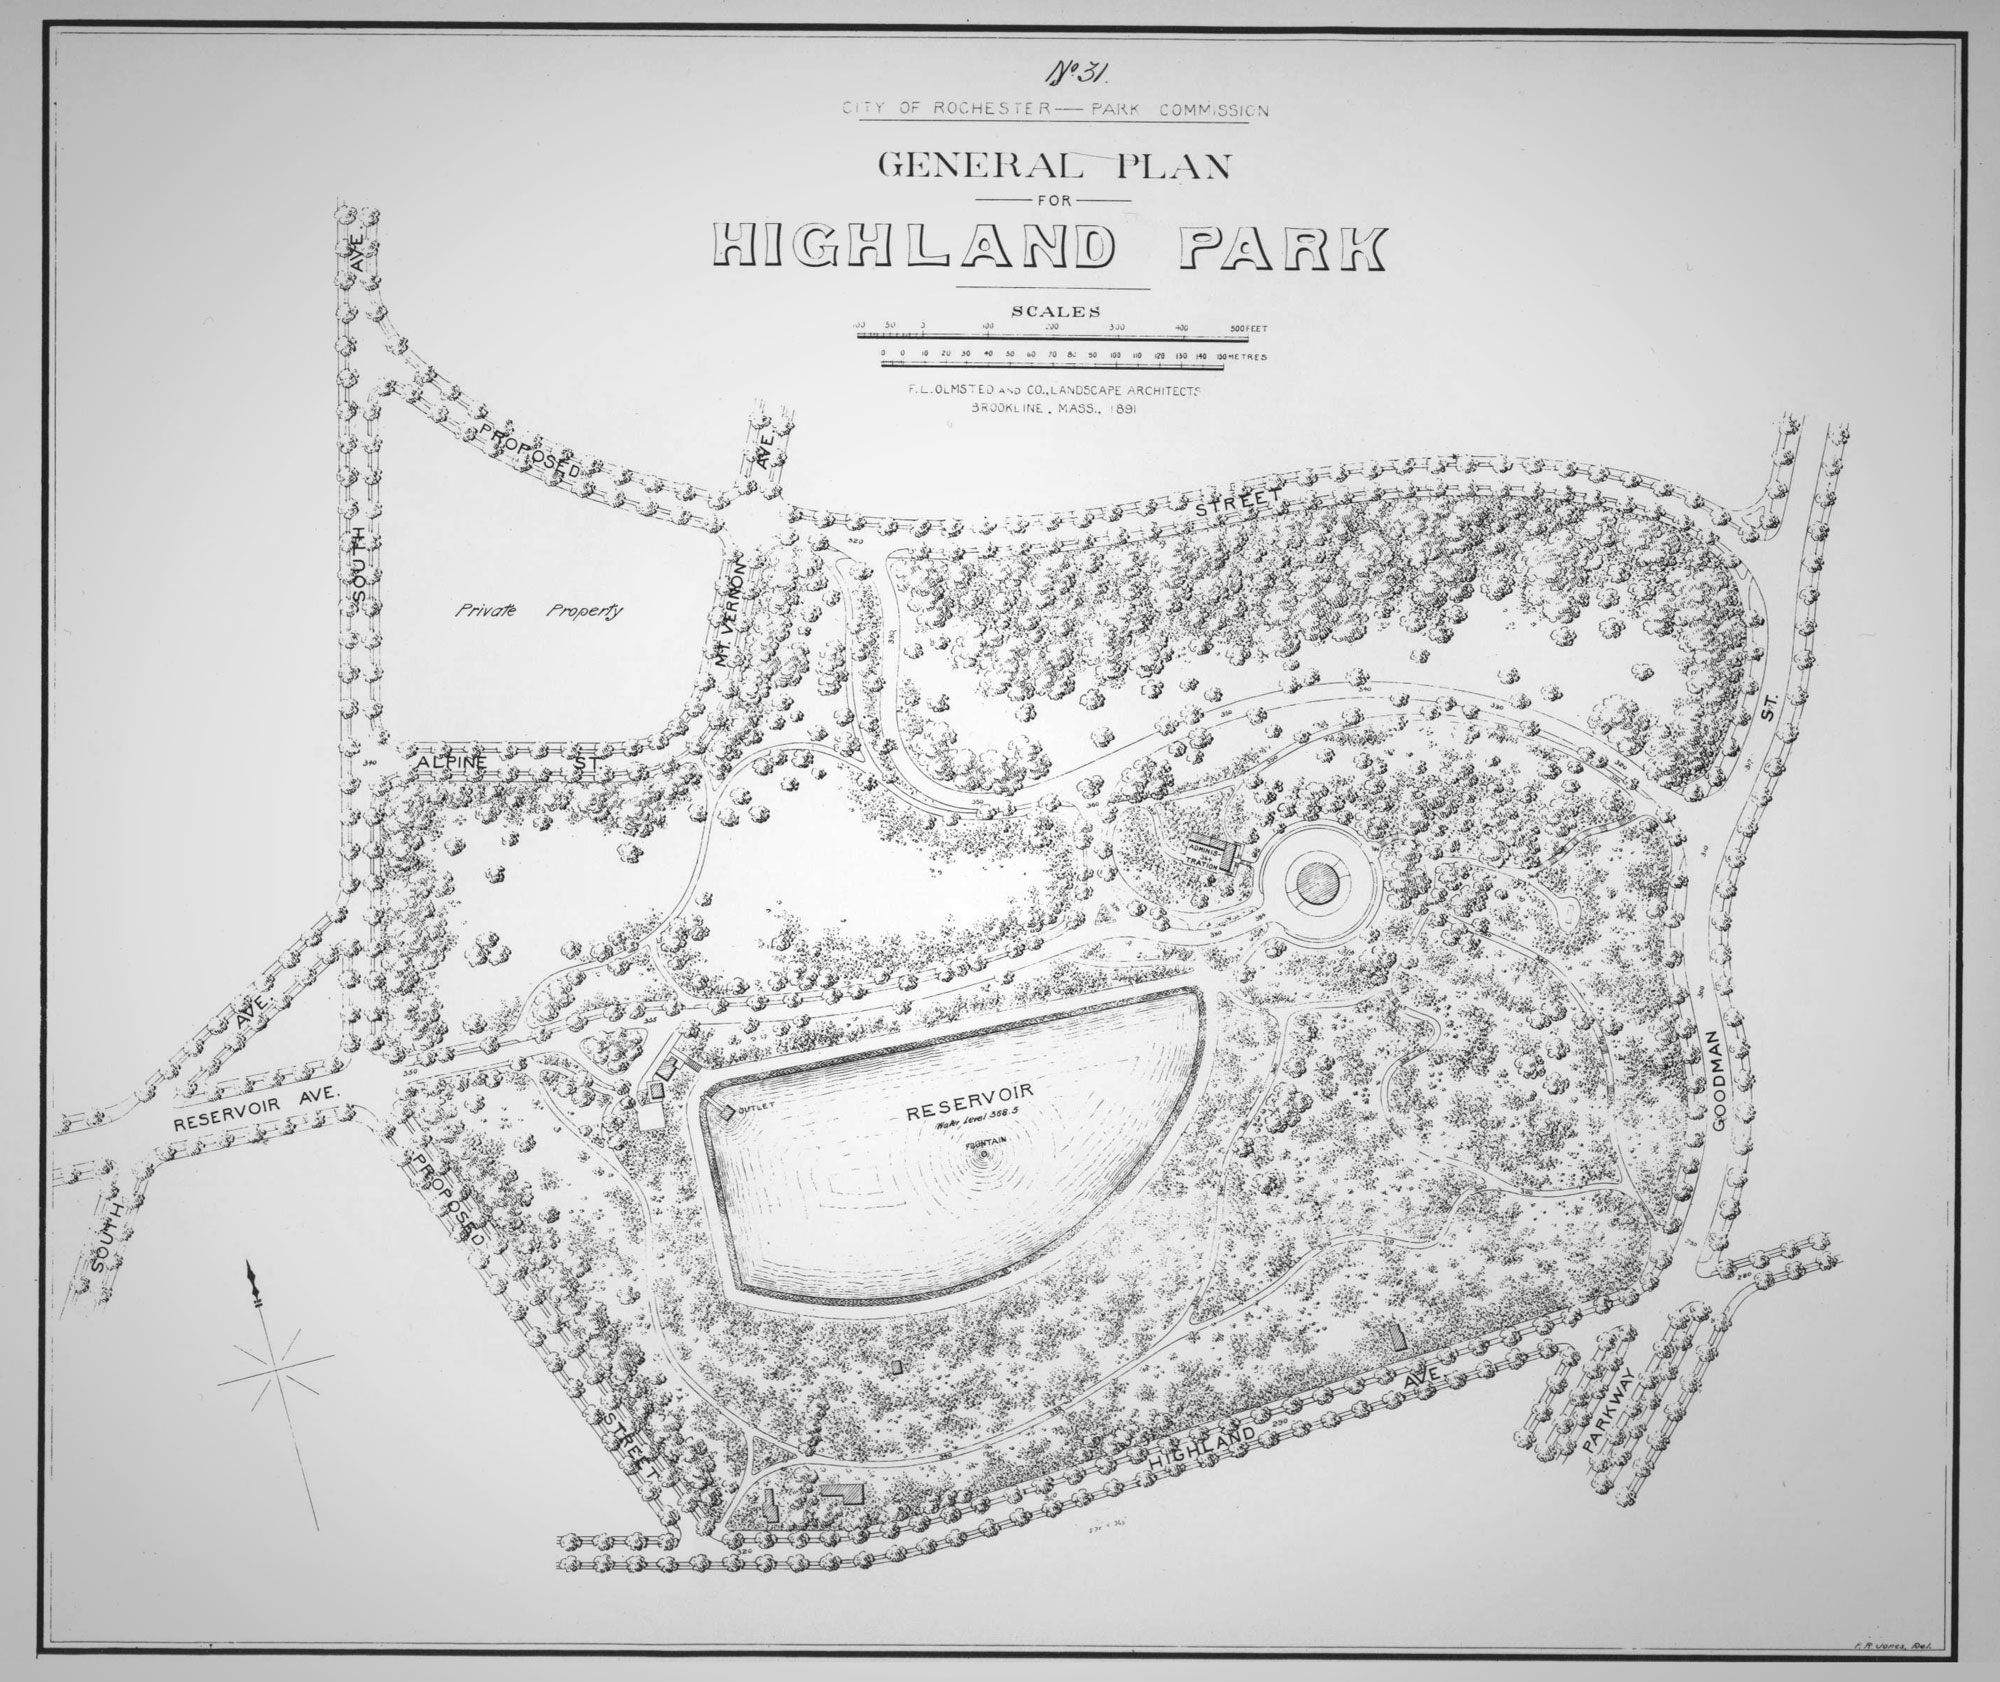 Original plan drawing of Highland Park by Frederick Law Olmsted & Co.